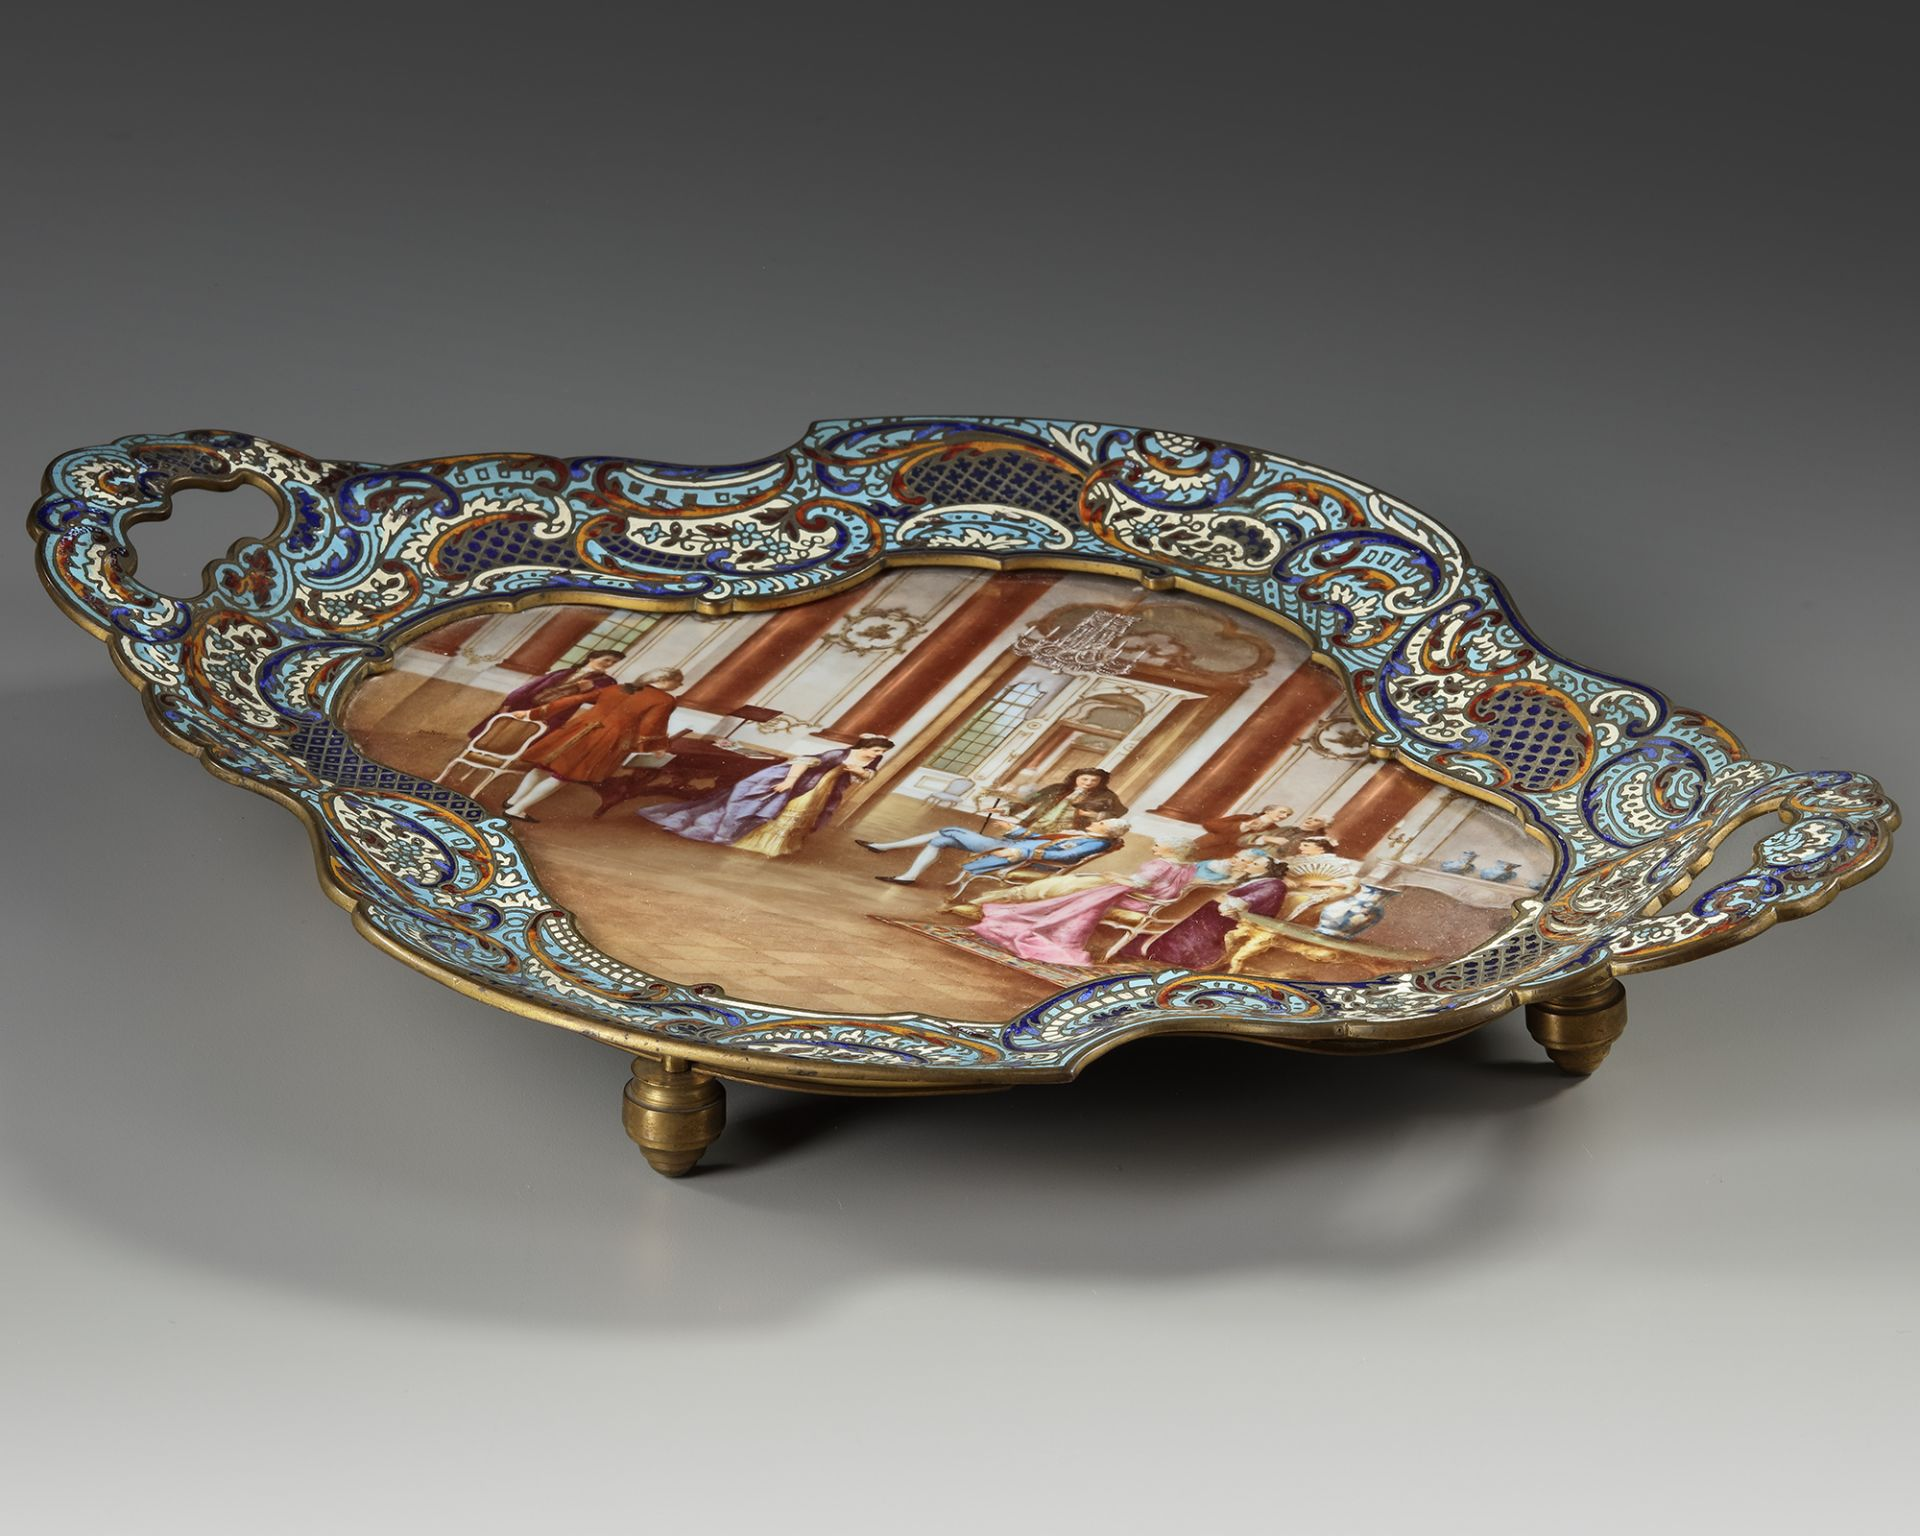 A FRENCH GILT ENAMEL CHAMPLEVÉ DRESSER STAND, 19TH CENTURY - Image 2 of 3